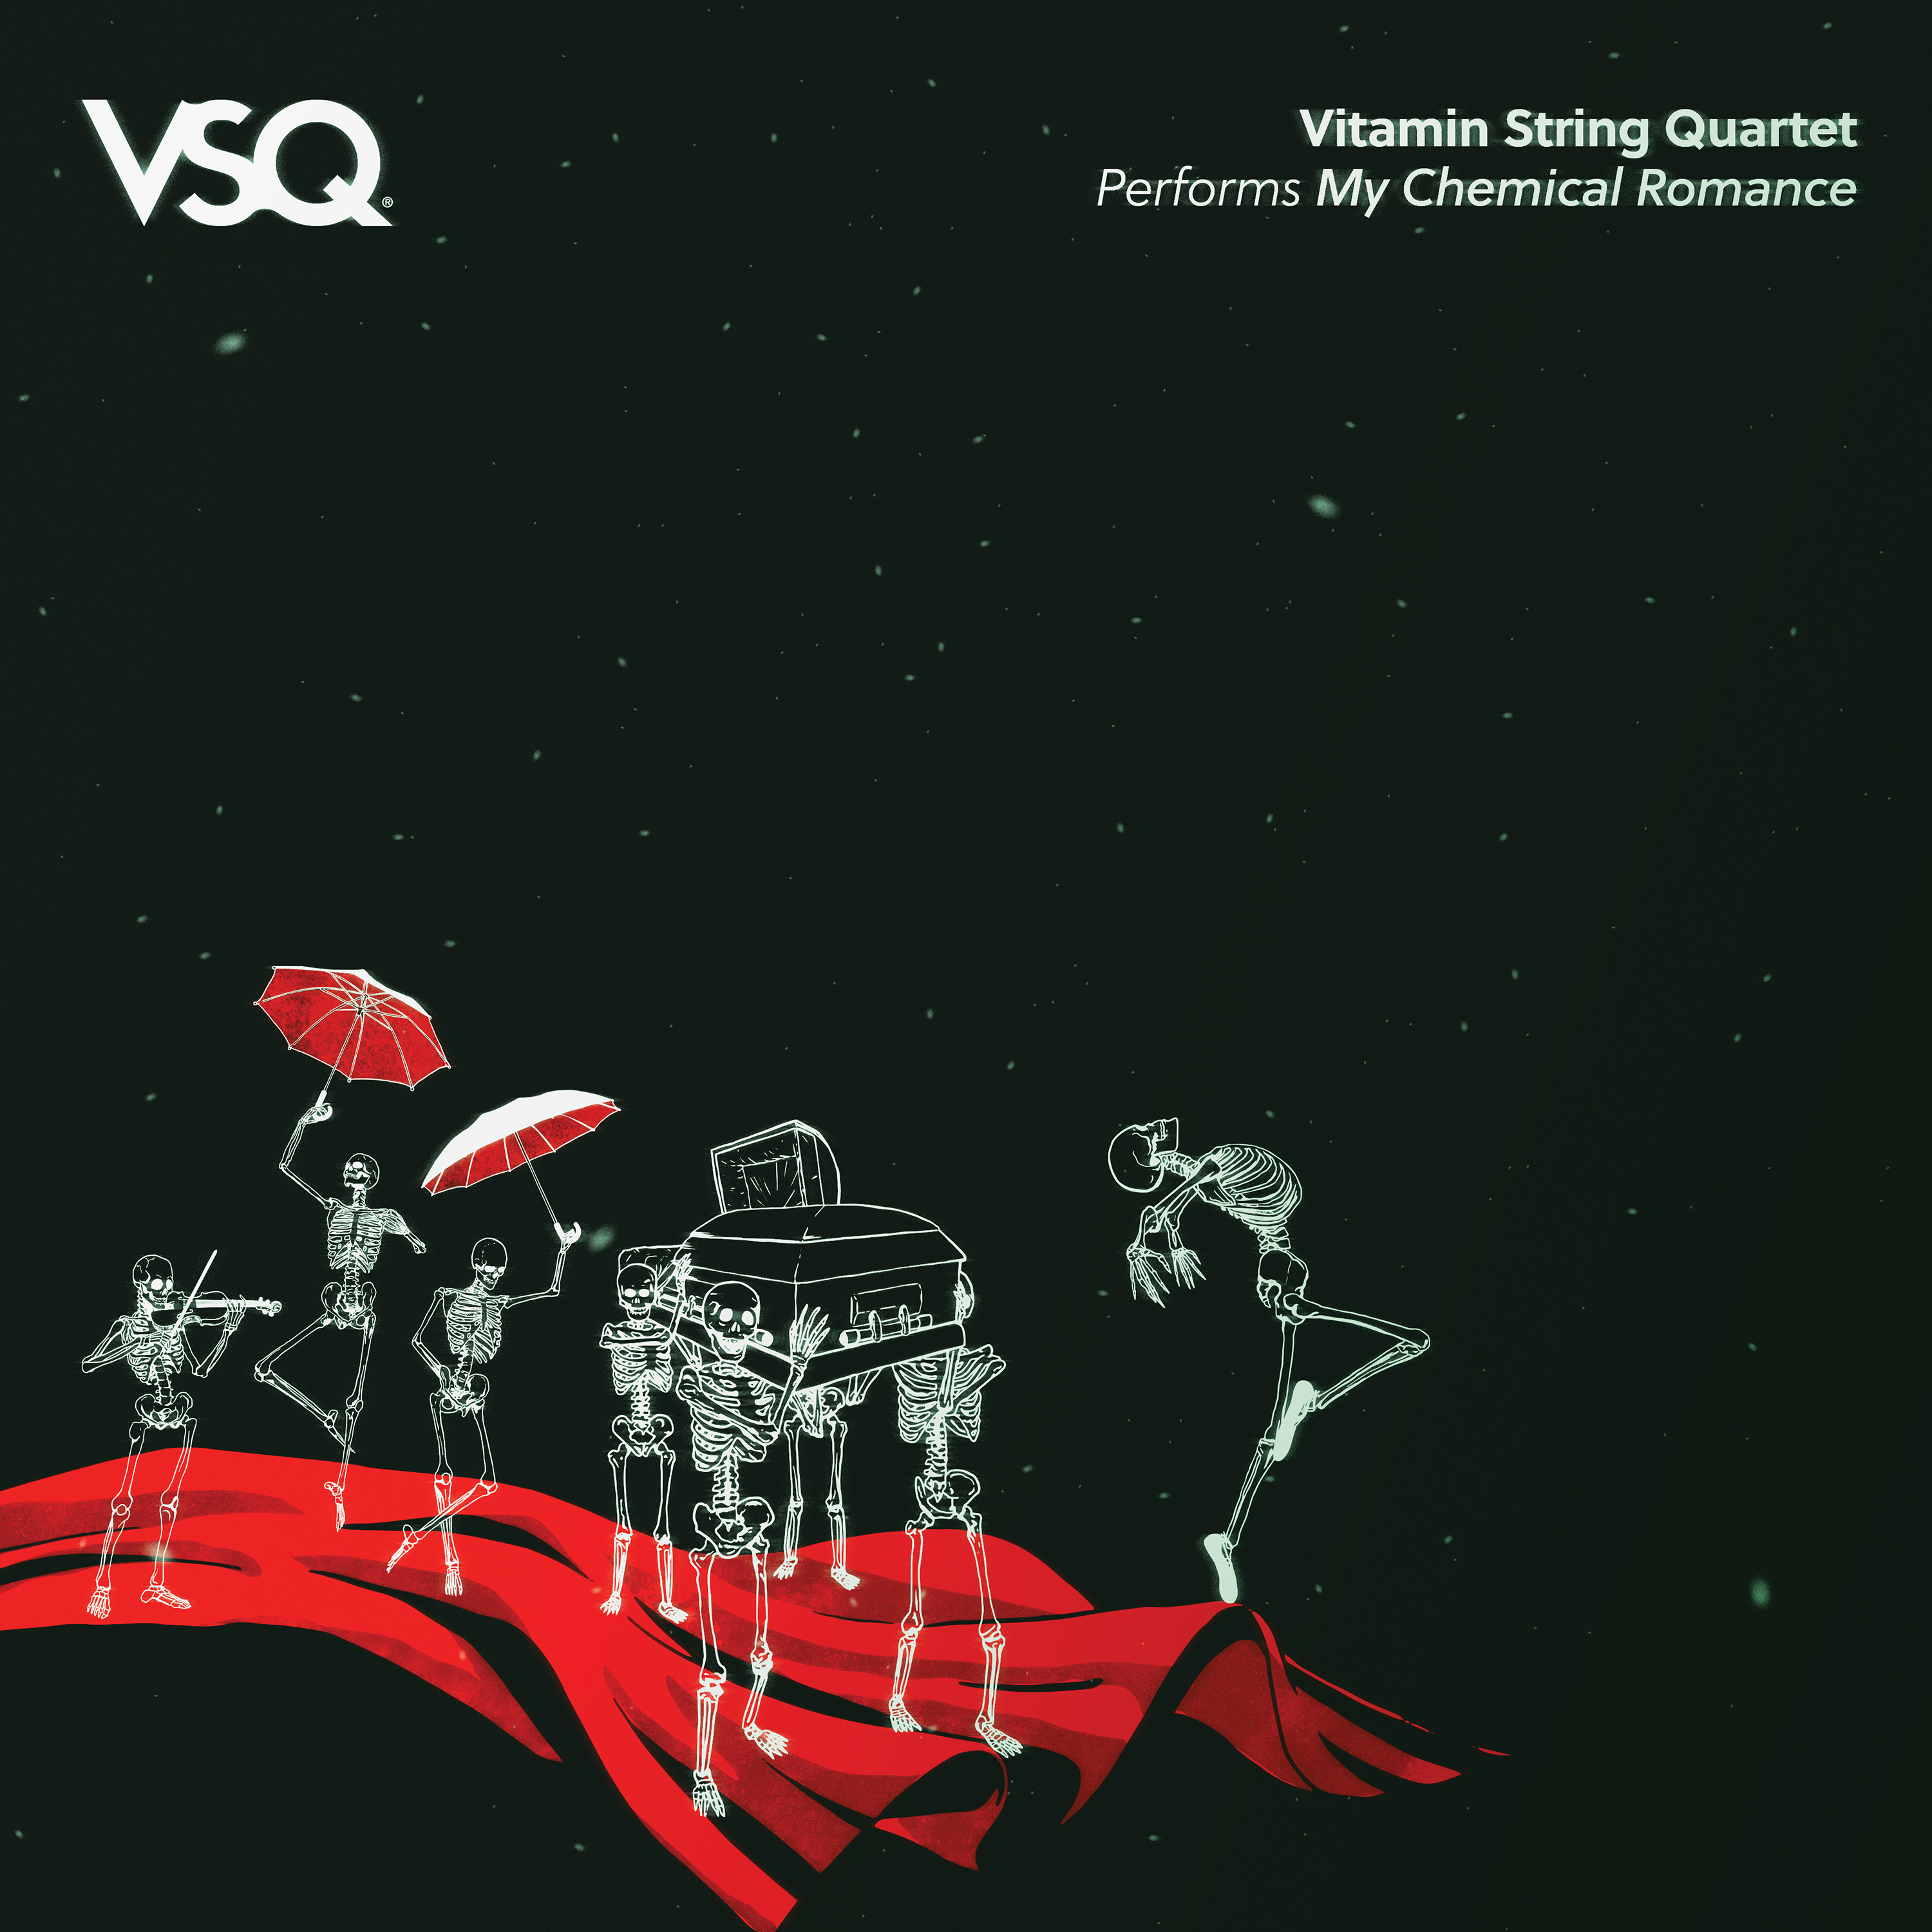 Vitamin String Quartet - Vitamin String Quartet Performs My Chemical Romance [RSD Drops 2021]